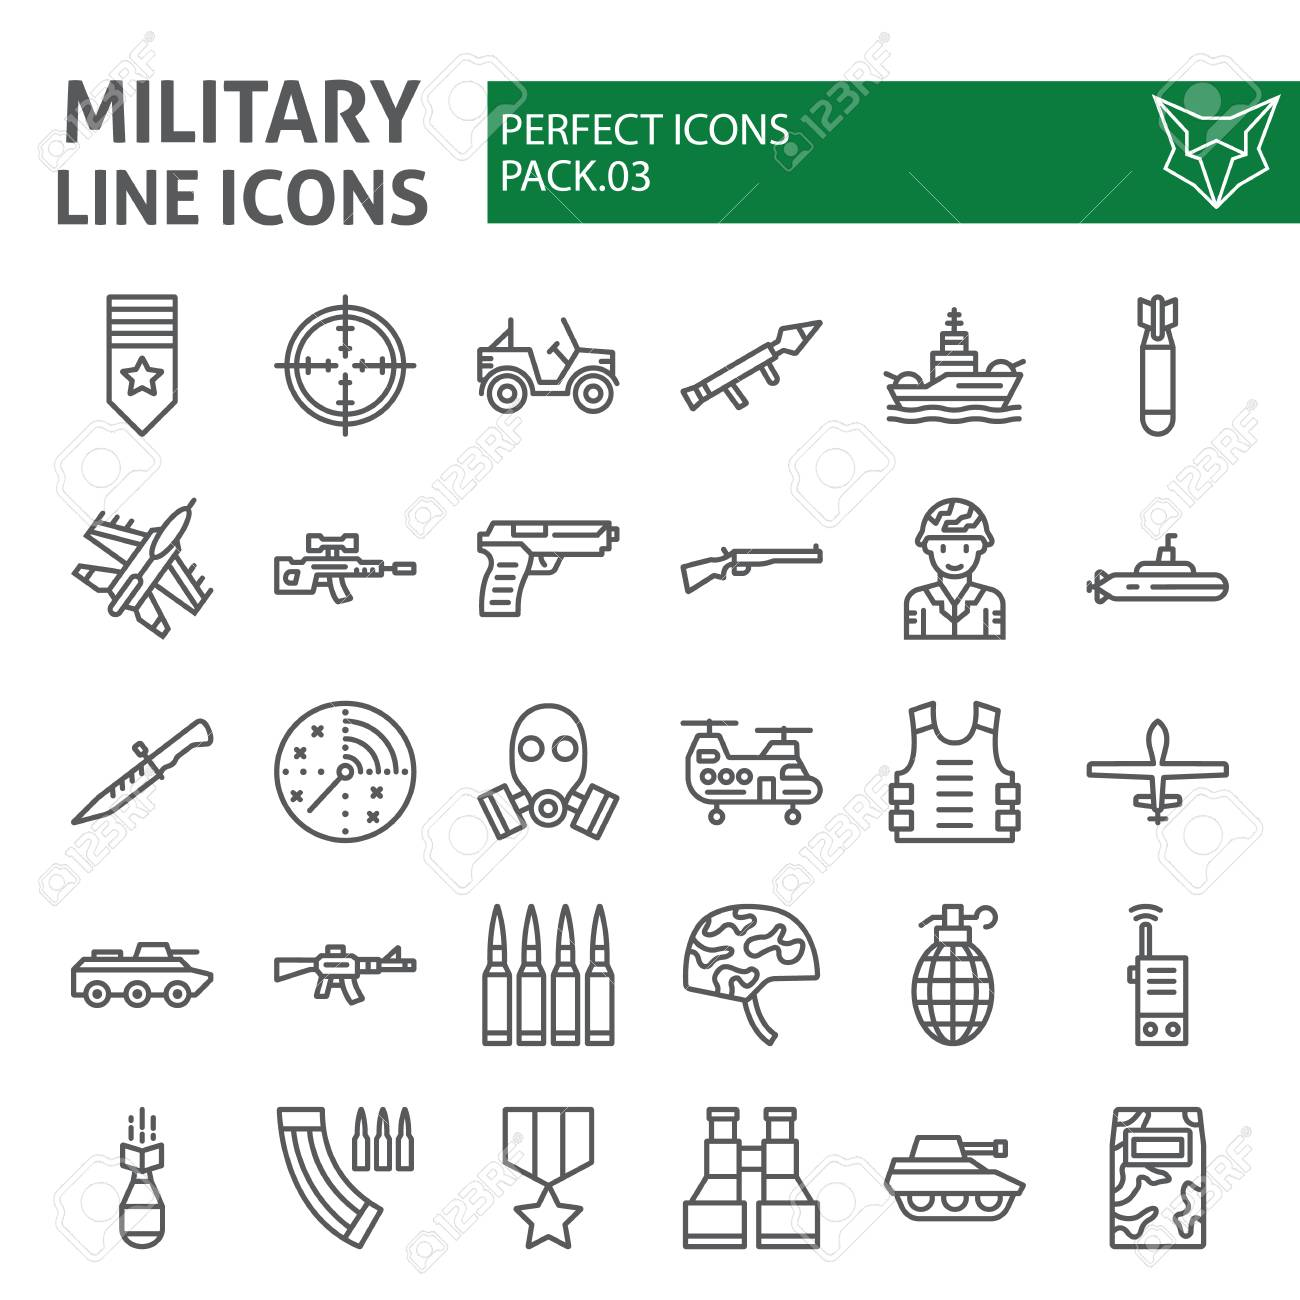 Military line icon set, army symbols collection, vector sketches, illustrations, war signs linear pictograms package isolated on white background. - 115419624